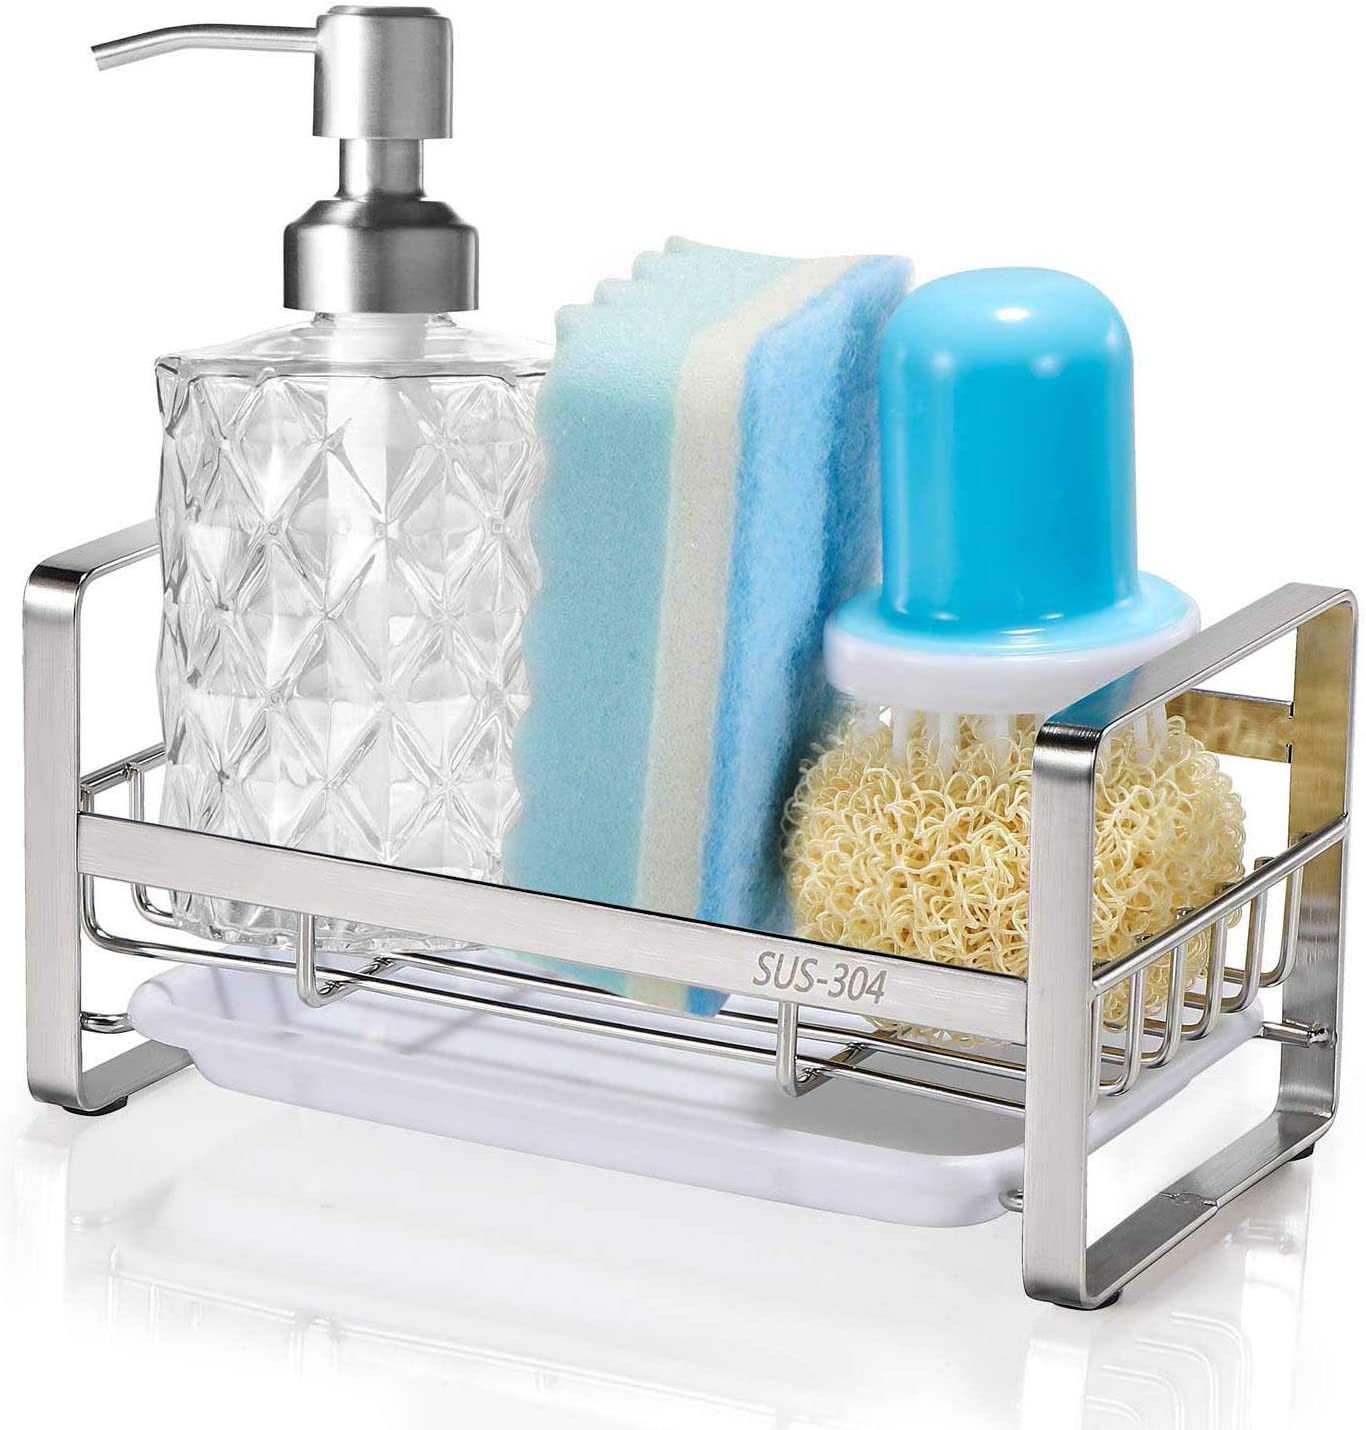 Sponge Holder, HULISEN Kitchen Sink Organizer, Sink Caddy, Sink Tray Drainer Rack, Brush Soap Holder with Removable Tray